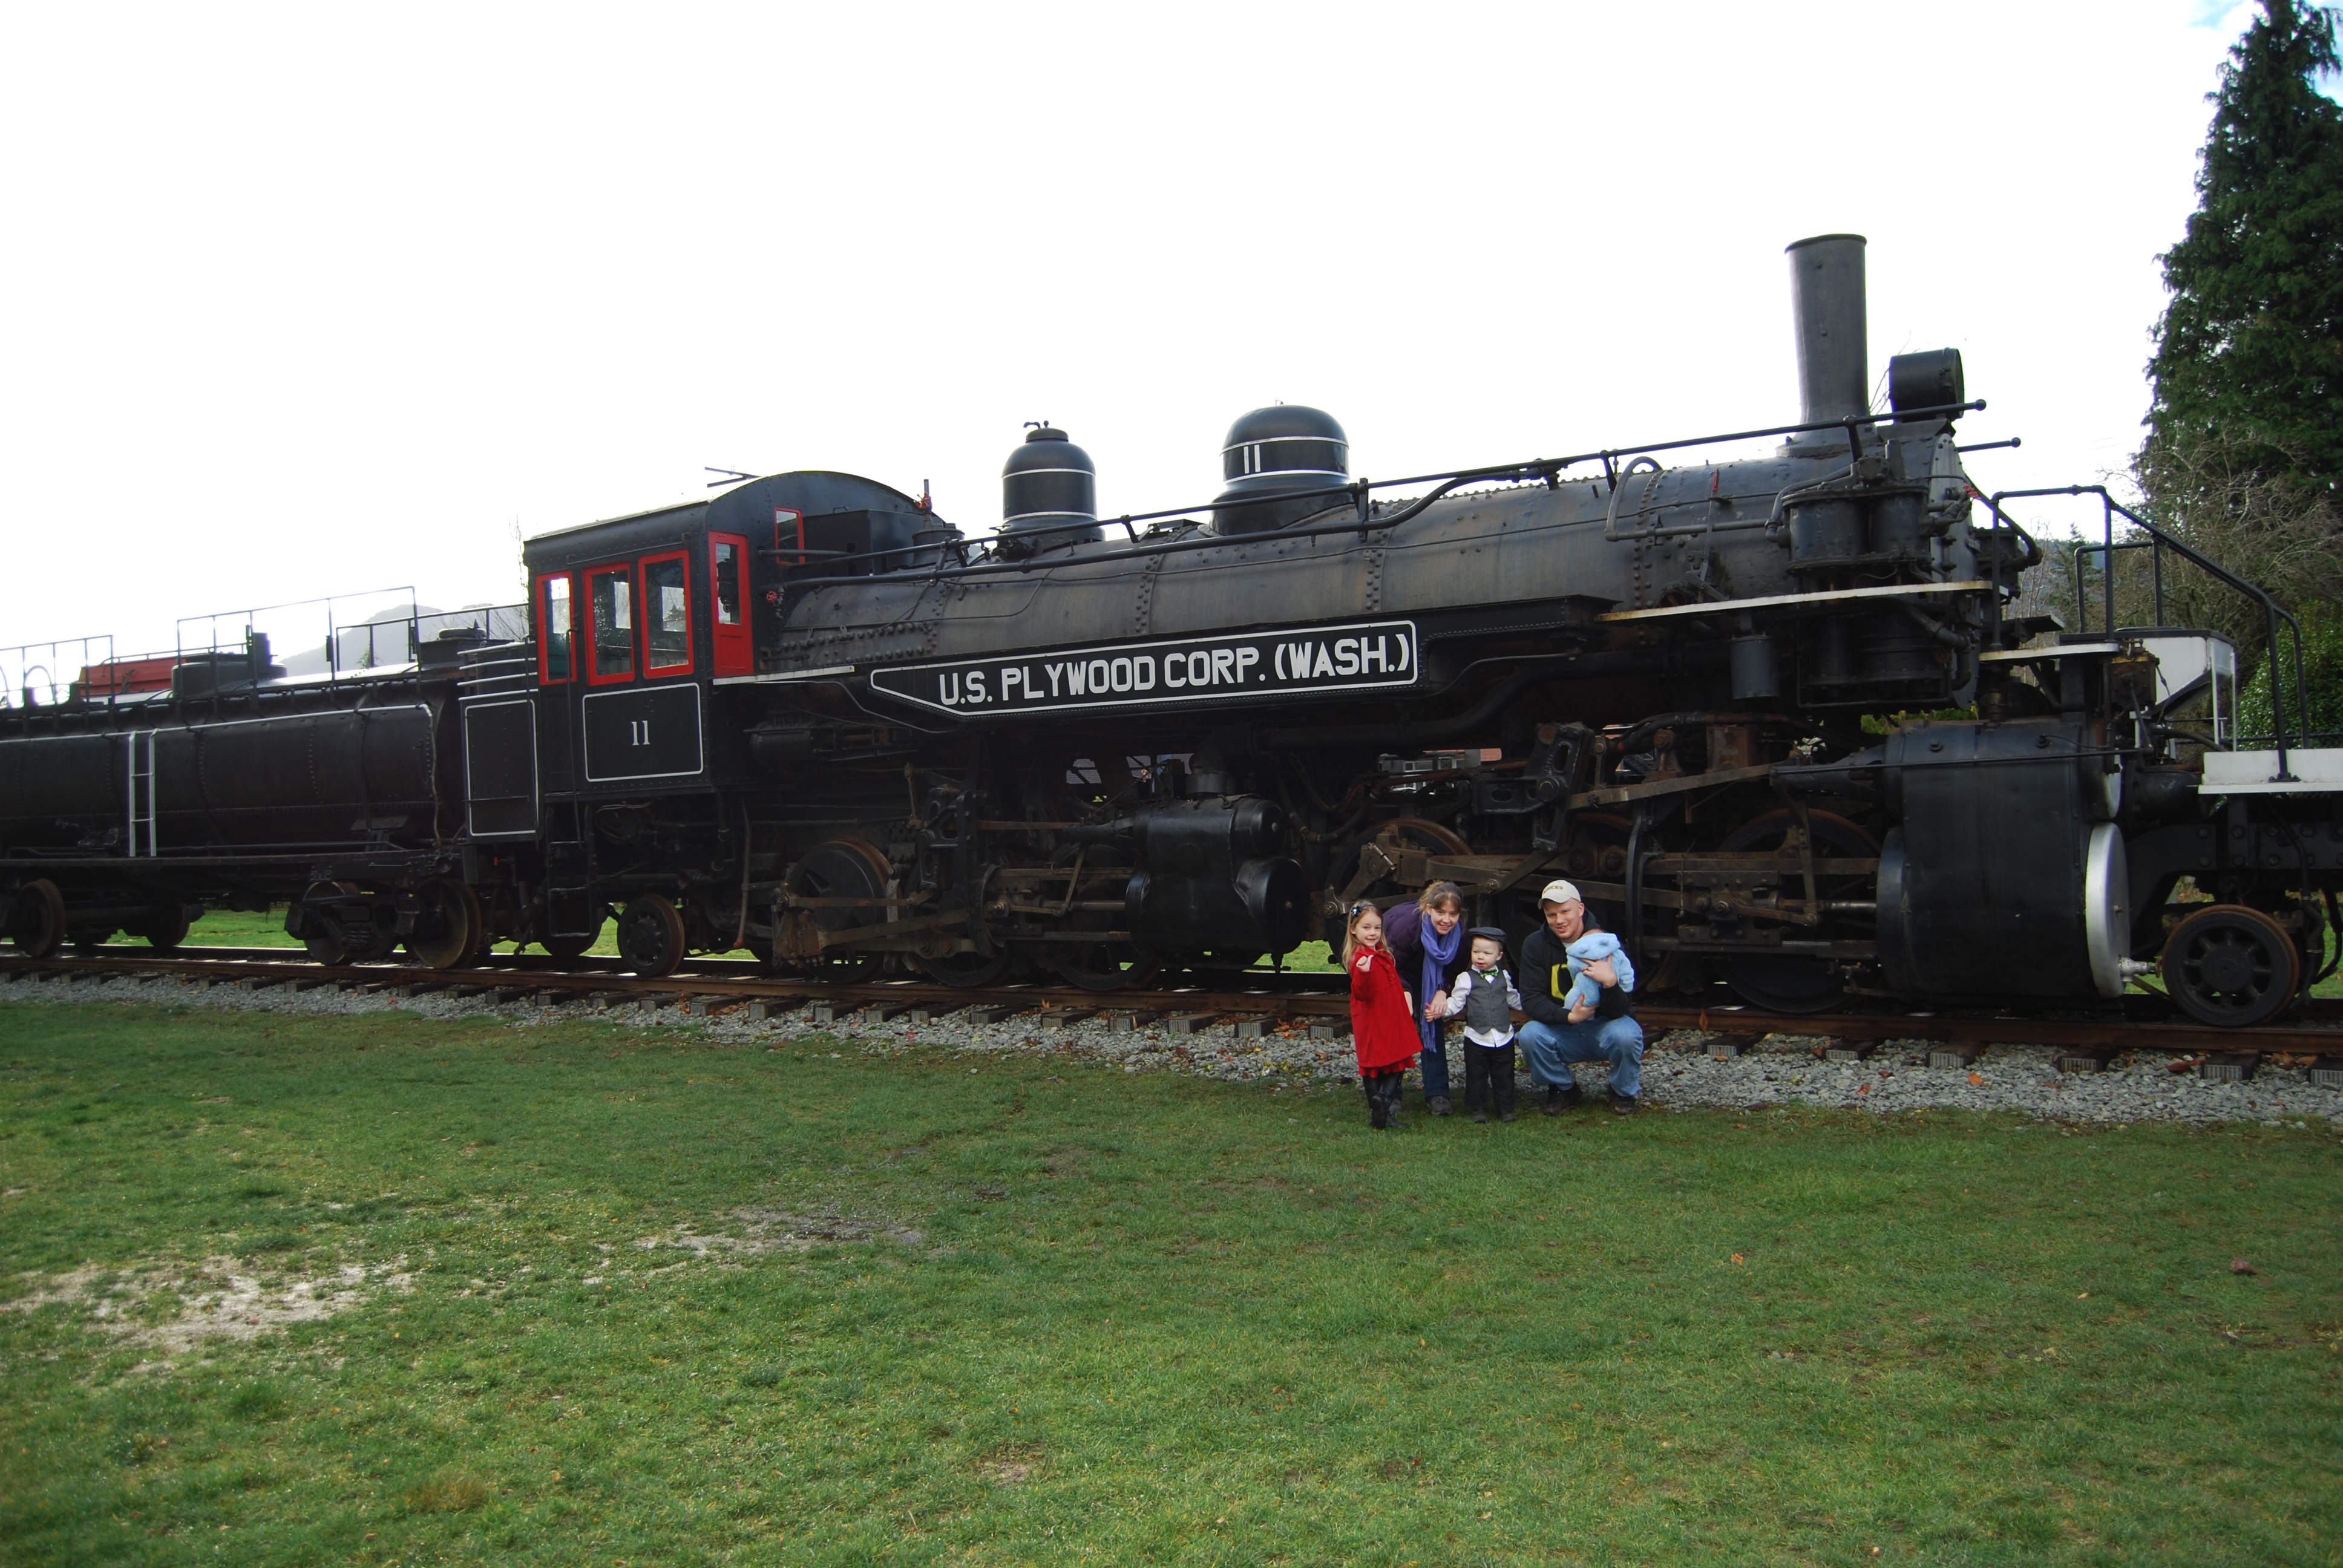 Visitors posing with Locomotive 11.